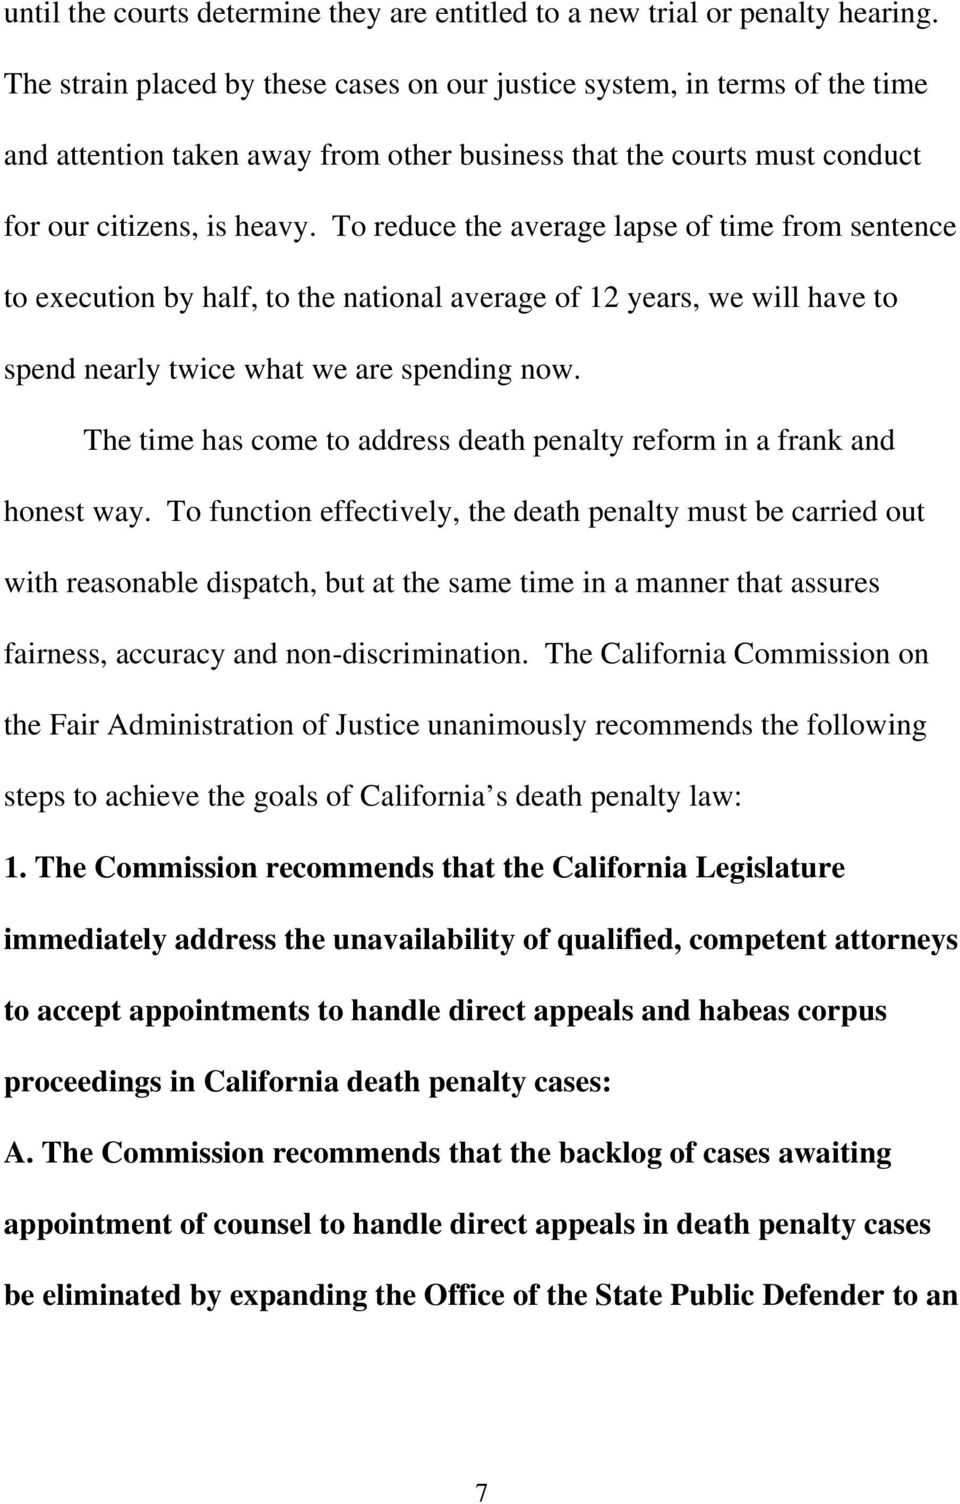 To reduce the average lapse of time from sentence to execution by half, to the national average of 12 years, we will have to spend nearly twice what we are spending now.